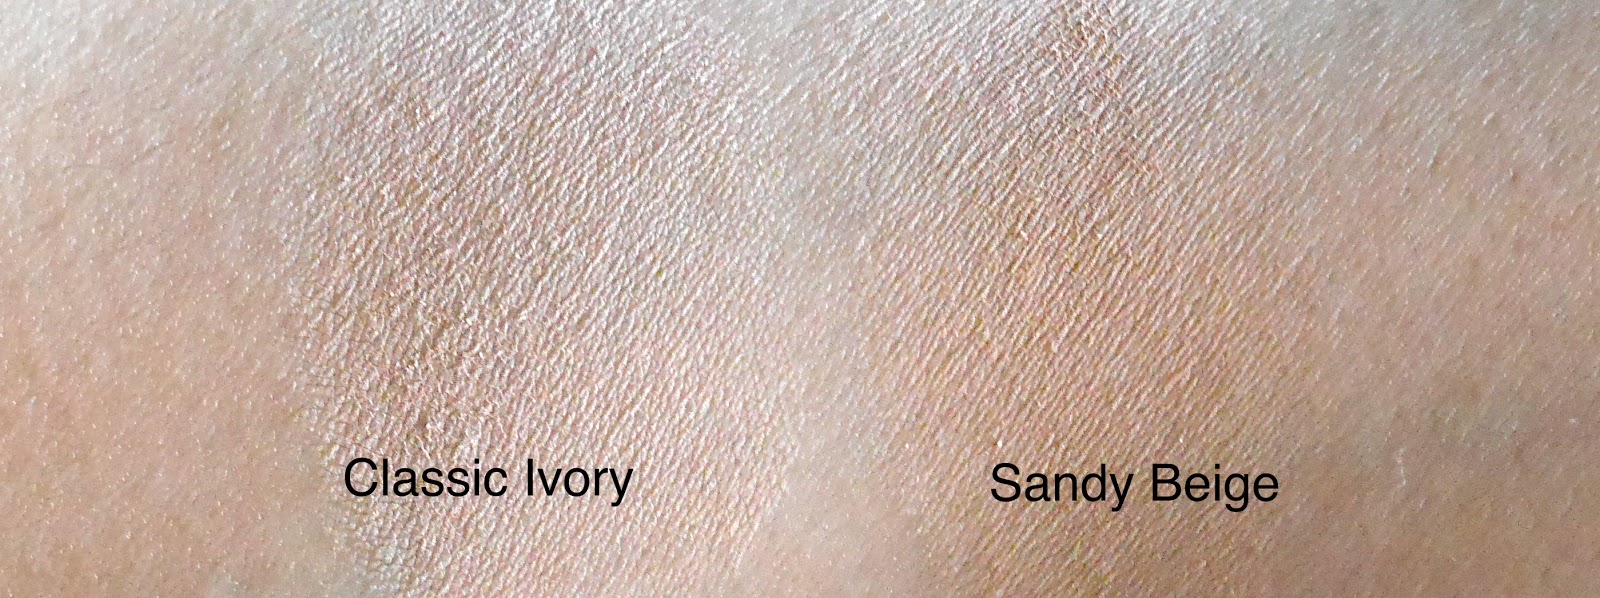 Maybelline Dream Powder review swatch classic ivory sandy beige